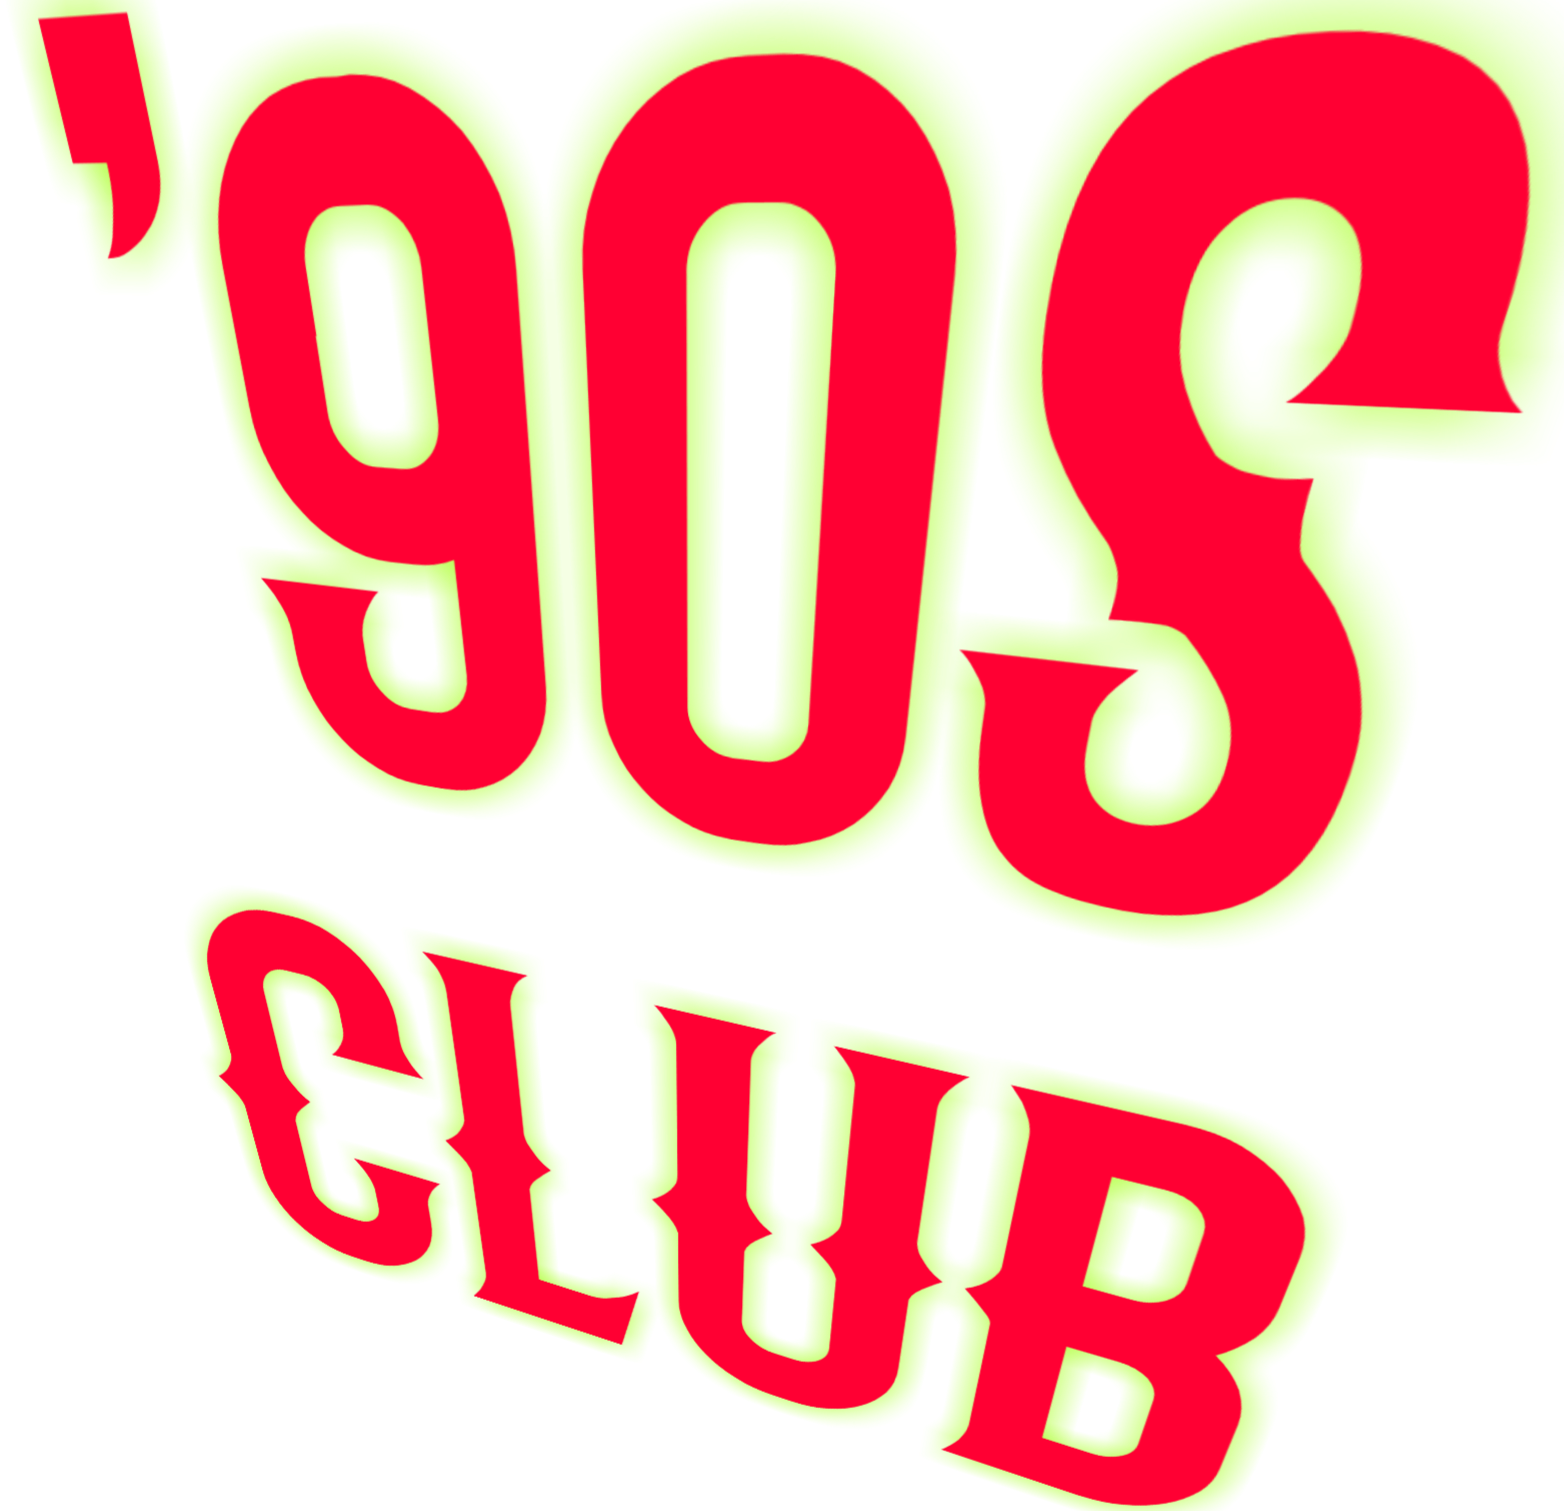 The 90s Club